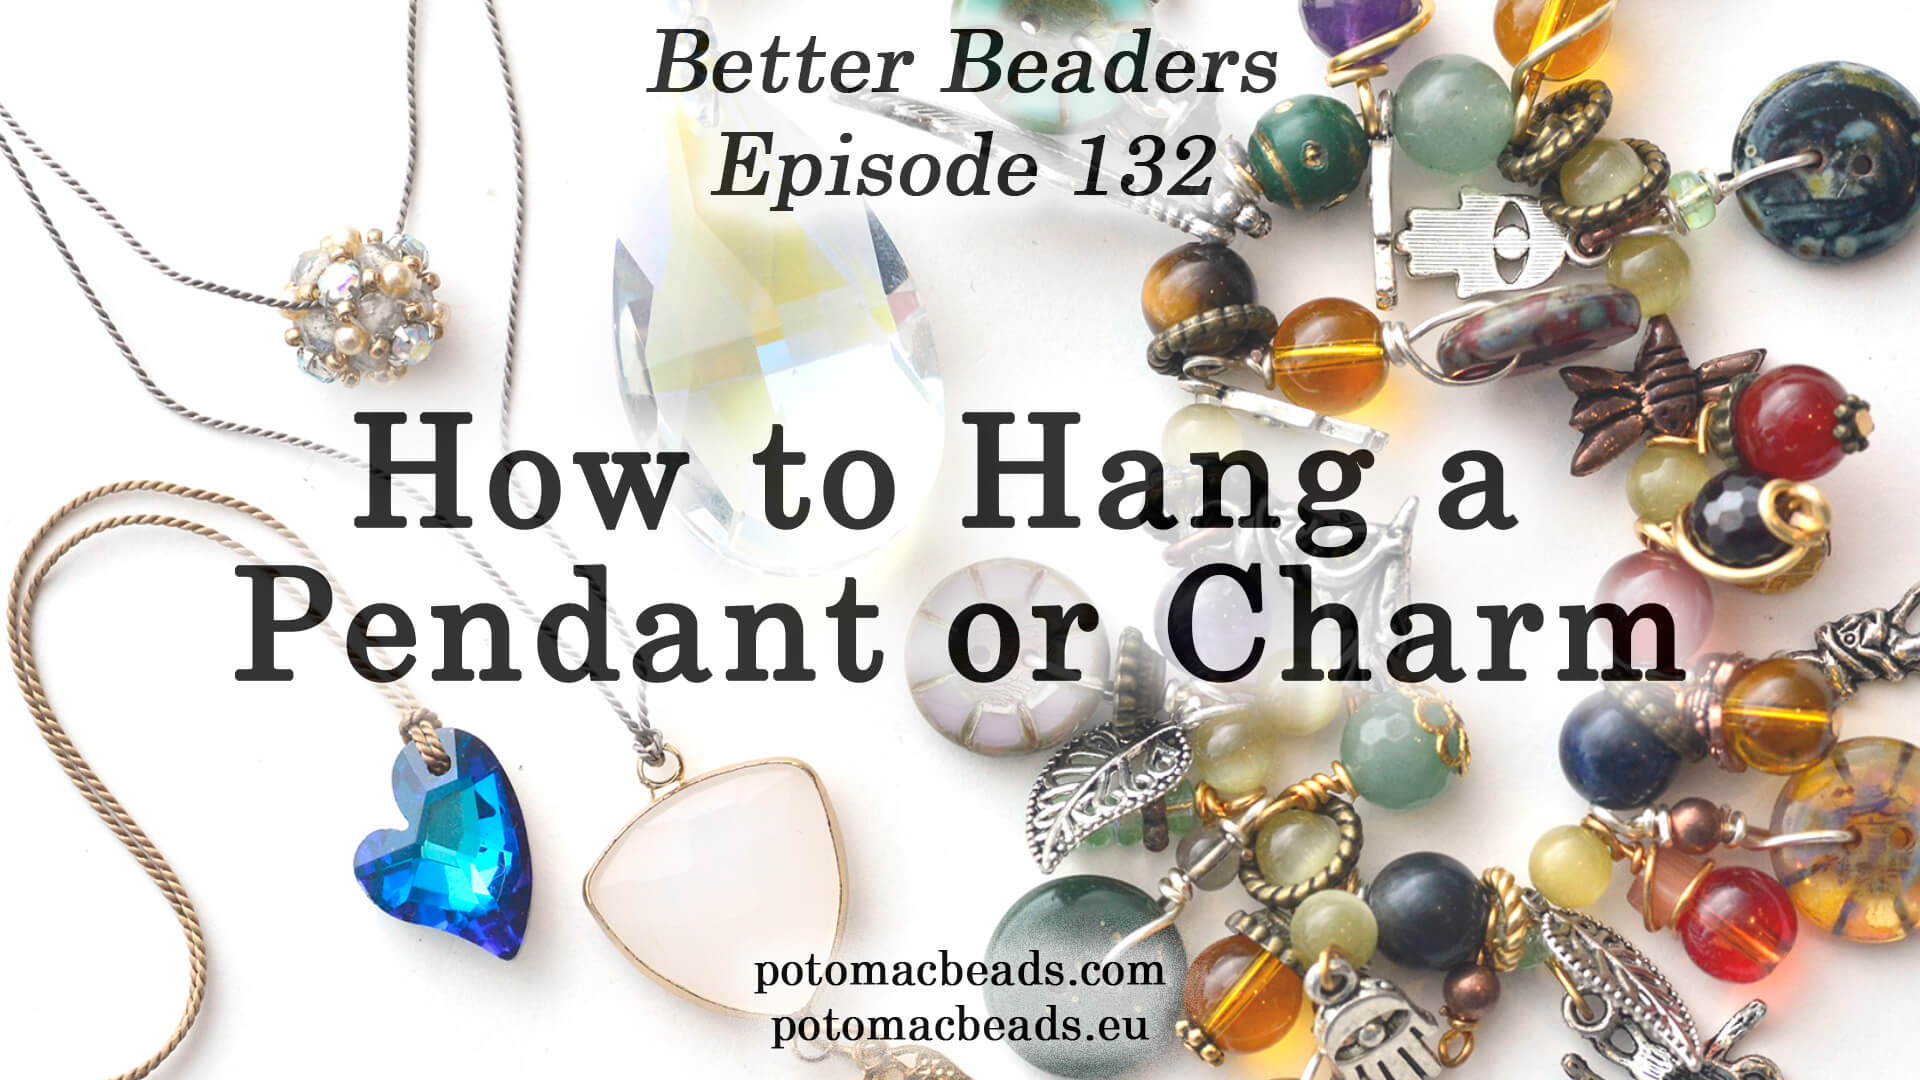 How to Bead Jewelry / Better Beader Episodes / Better Beader Episode 132 - How to Hang a Pendant or Charm